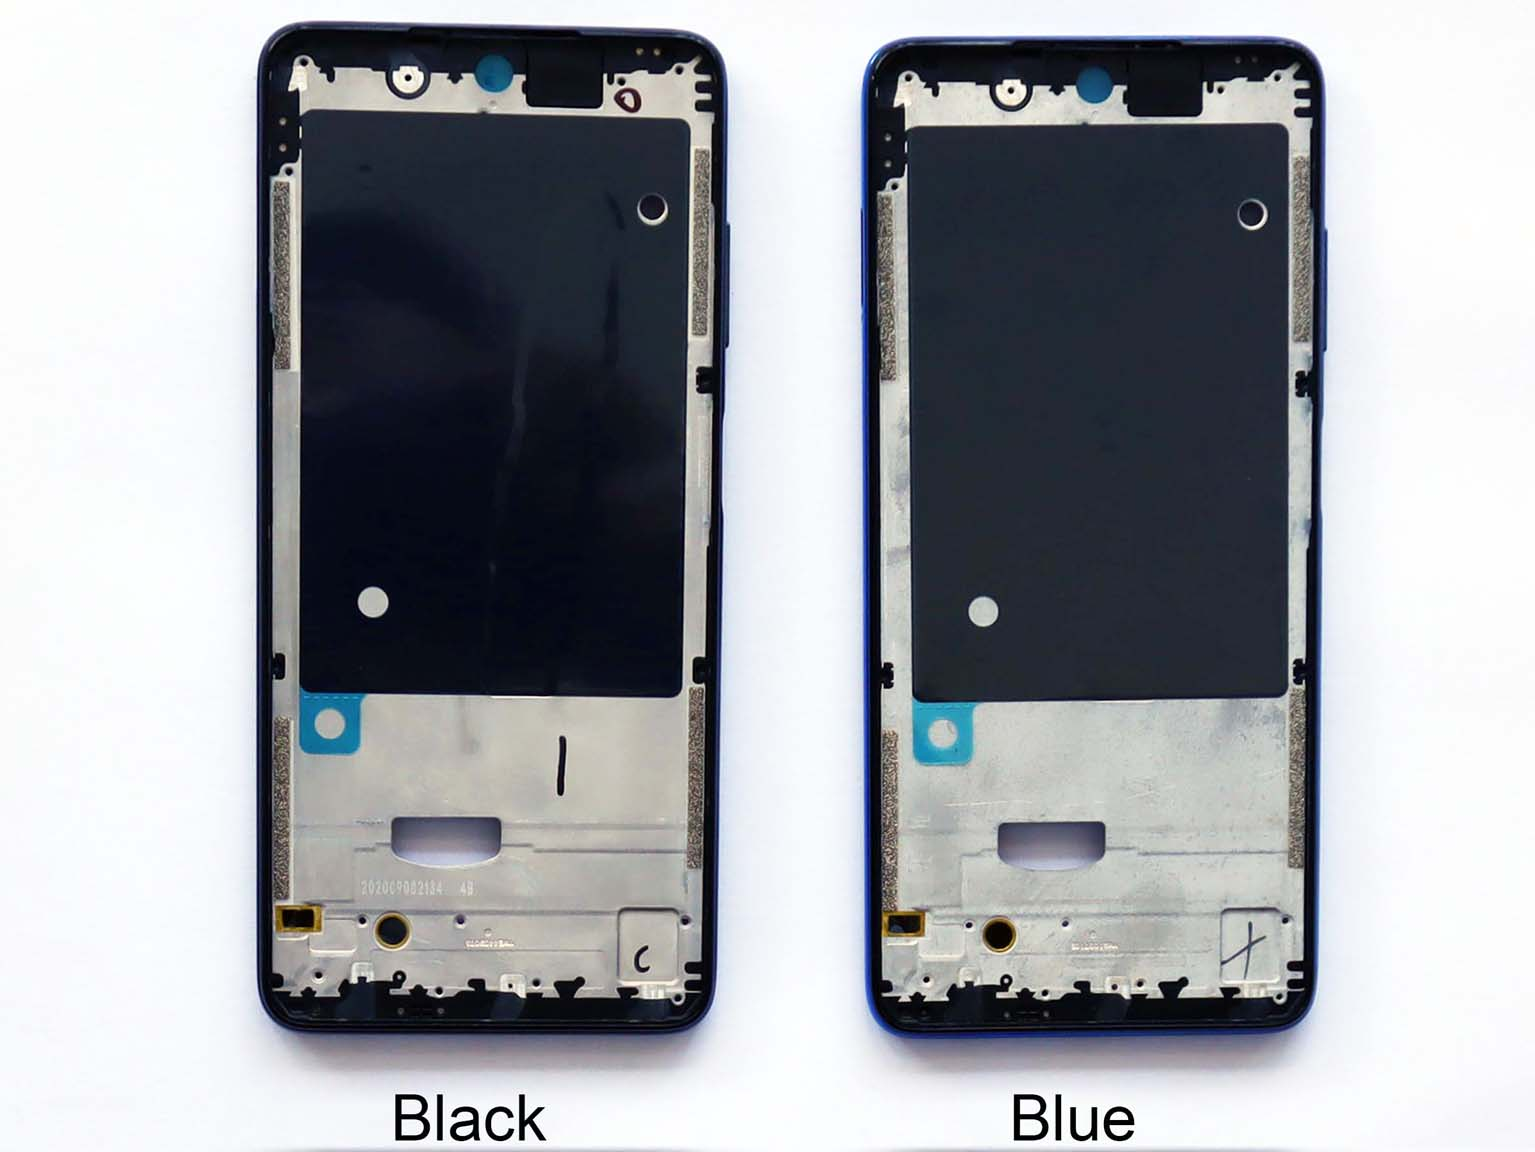 Touch Screen Digitizer Replacement for LG Optimus Black P970 -Black